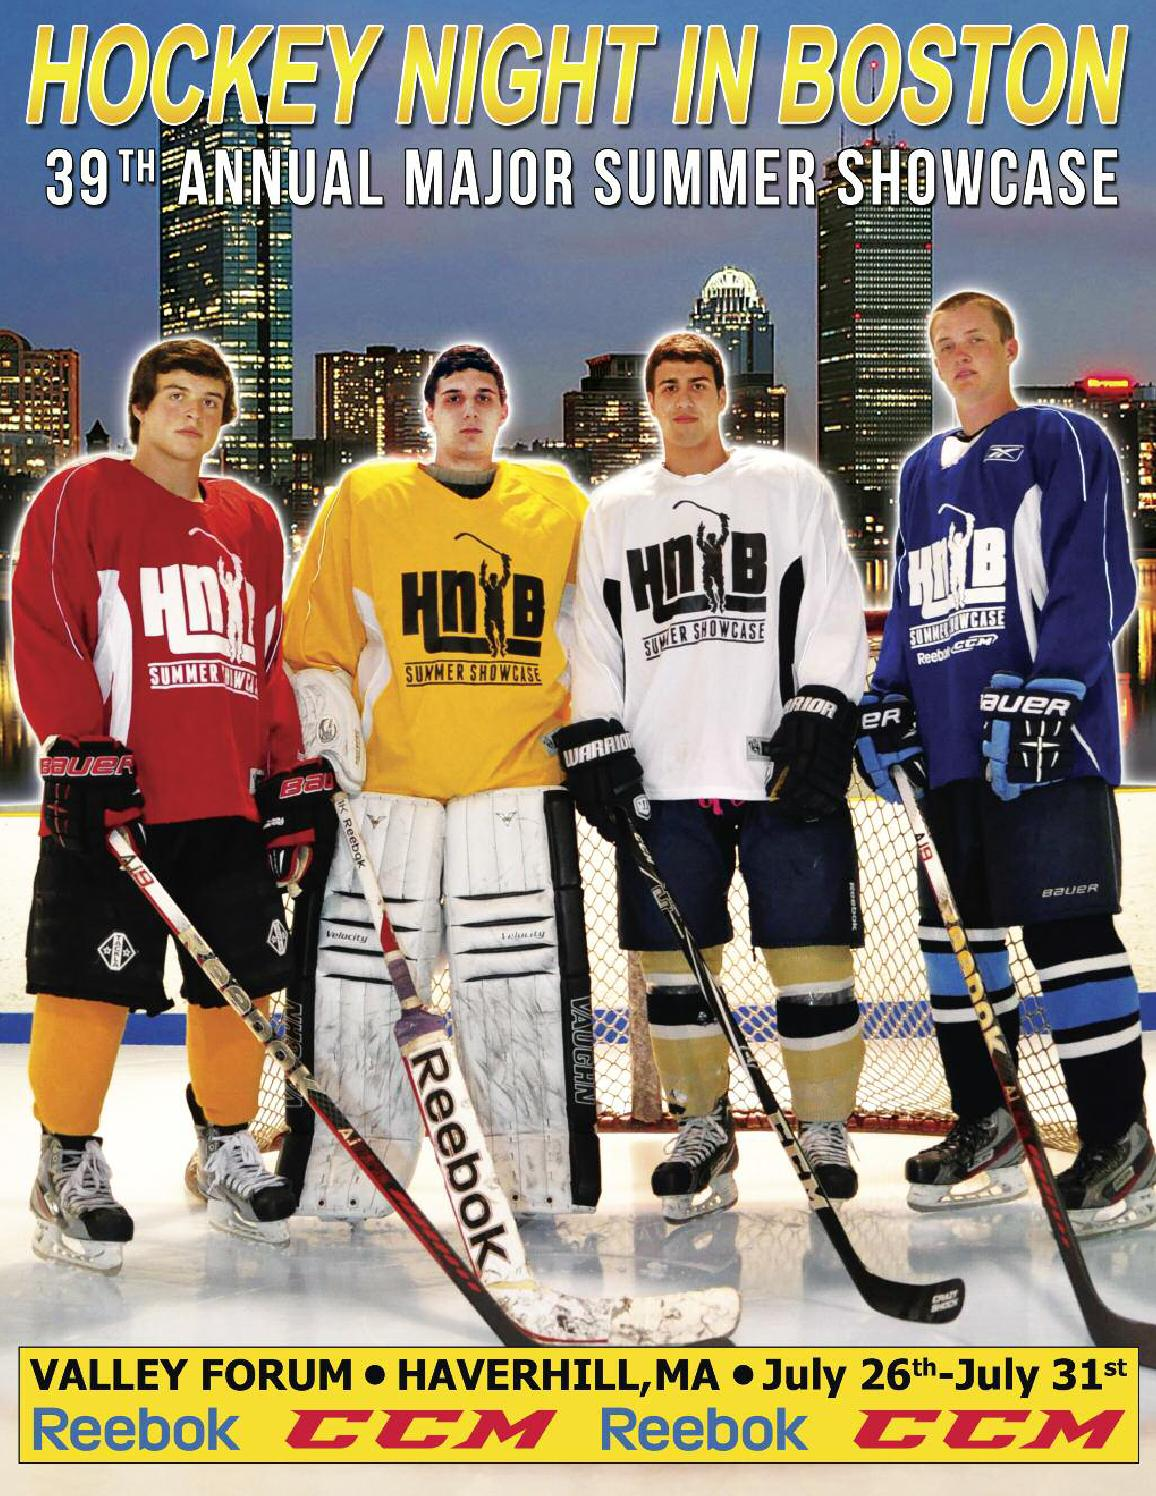 Hockey Night In Boston 2013 Boys Major Showcase Magazine